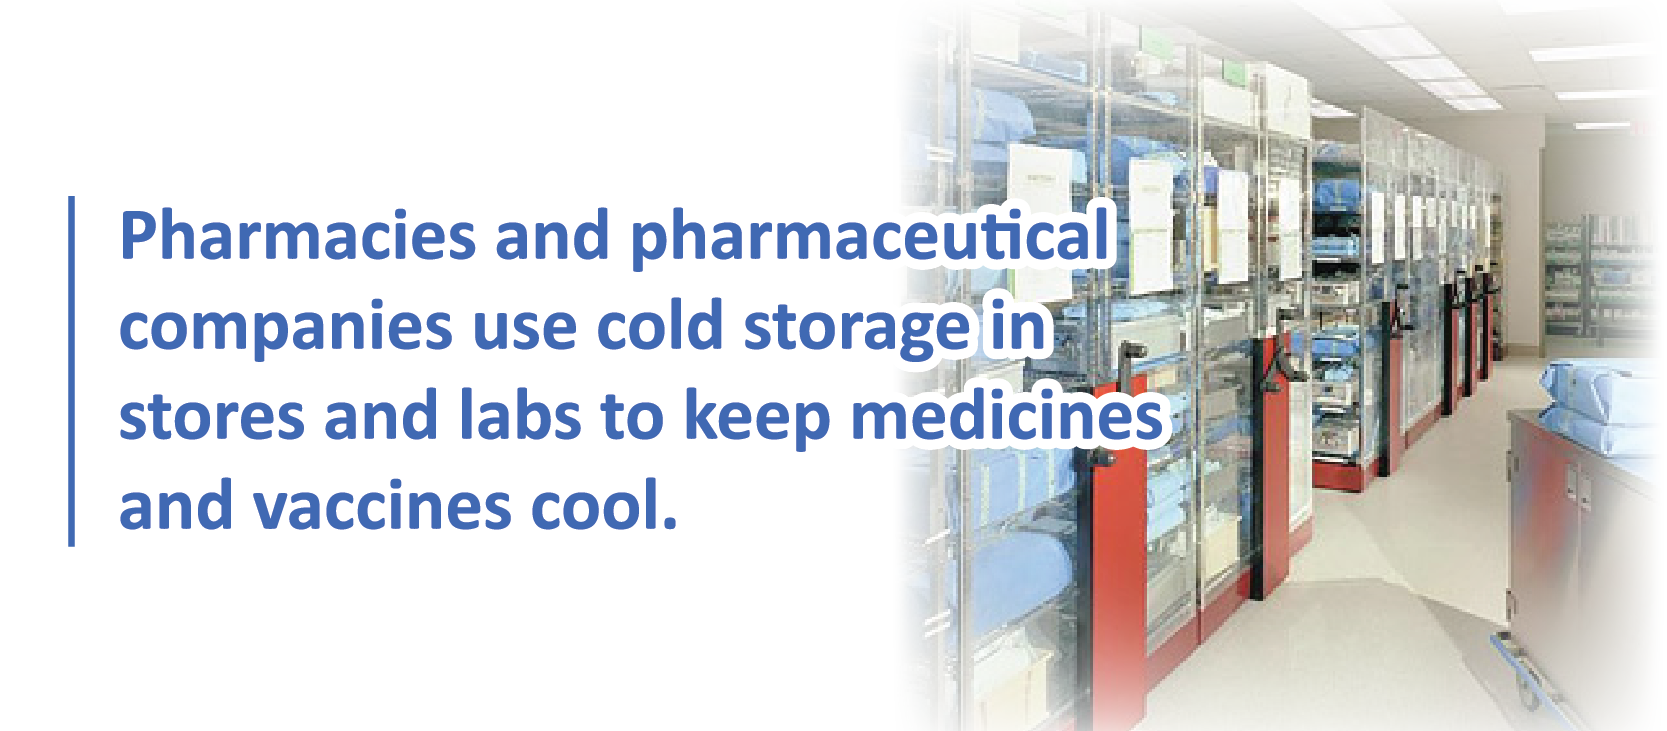 Information on Medical Facilities and Cold Storage